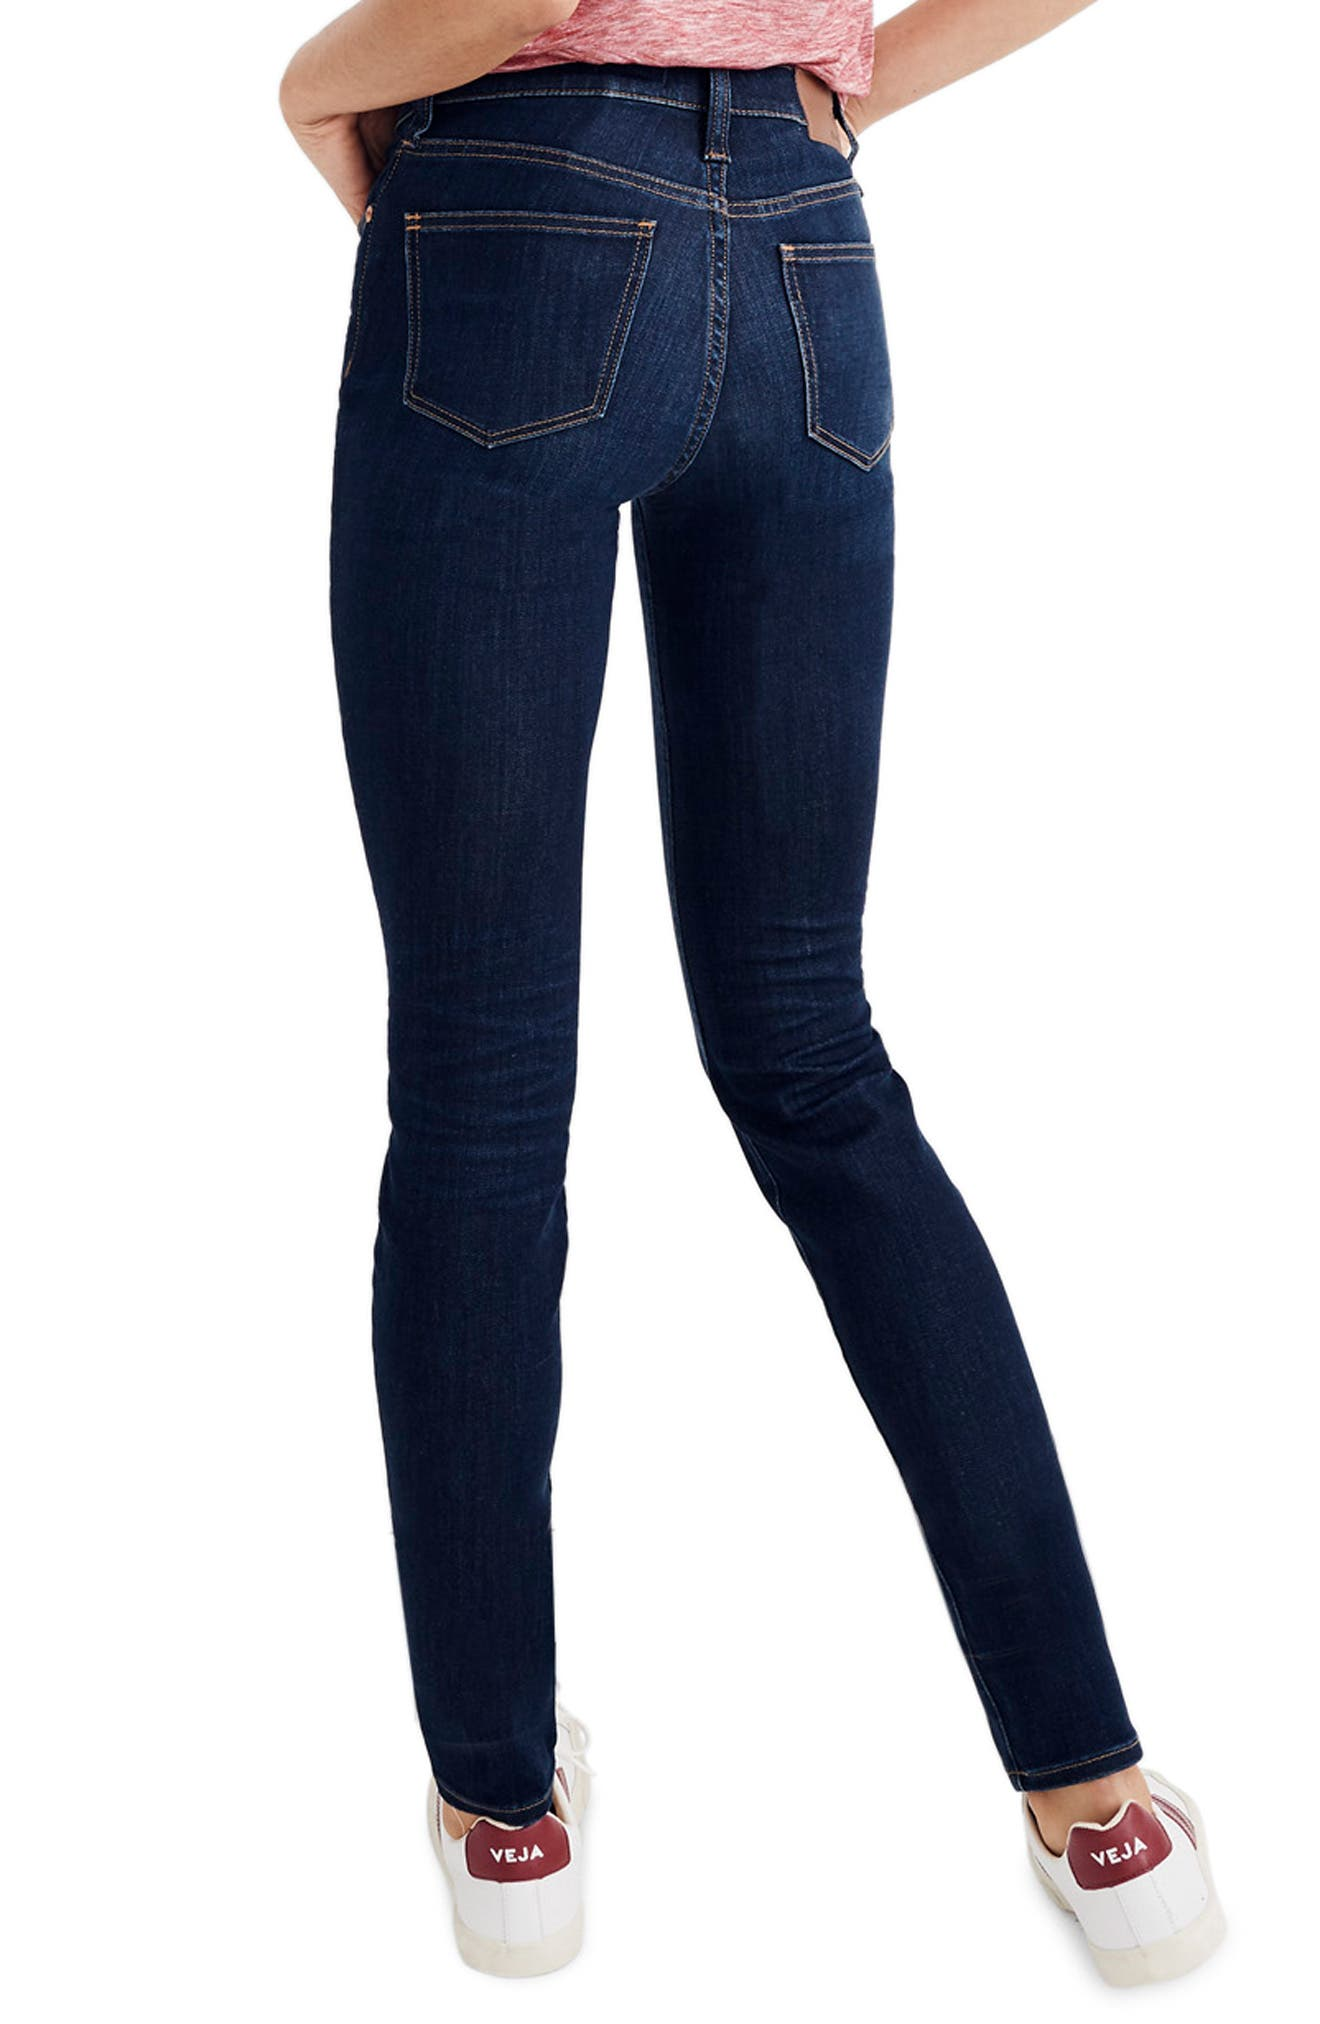 9-Inch High Rise Skinny Jeans,                             Alternate thumbnail 3, color,                             LARKSPUR